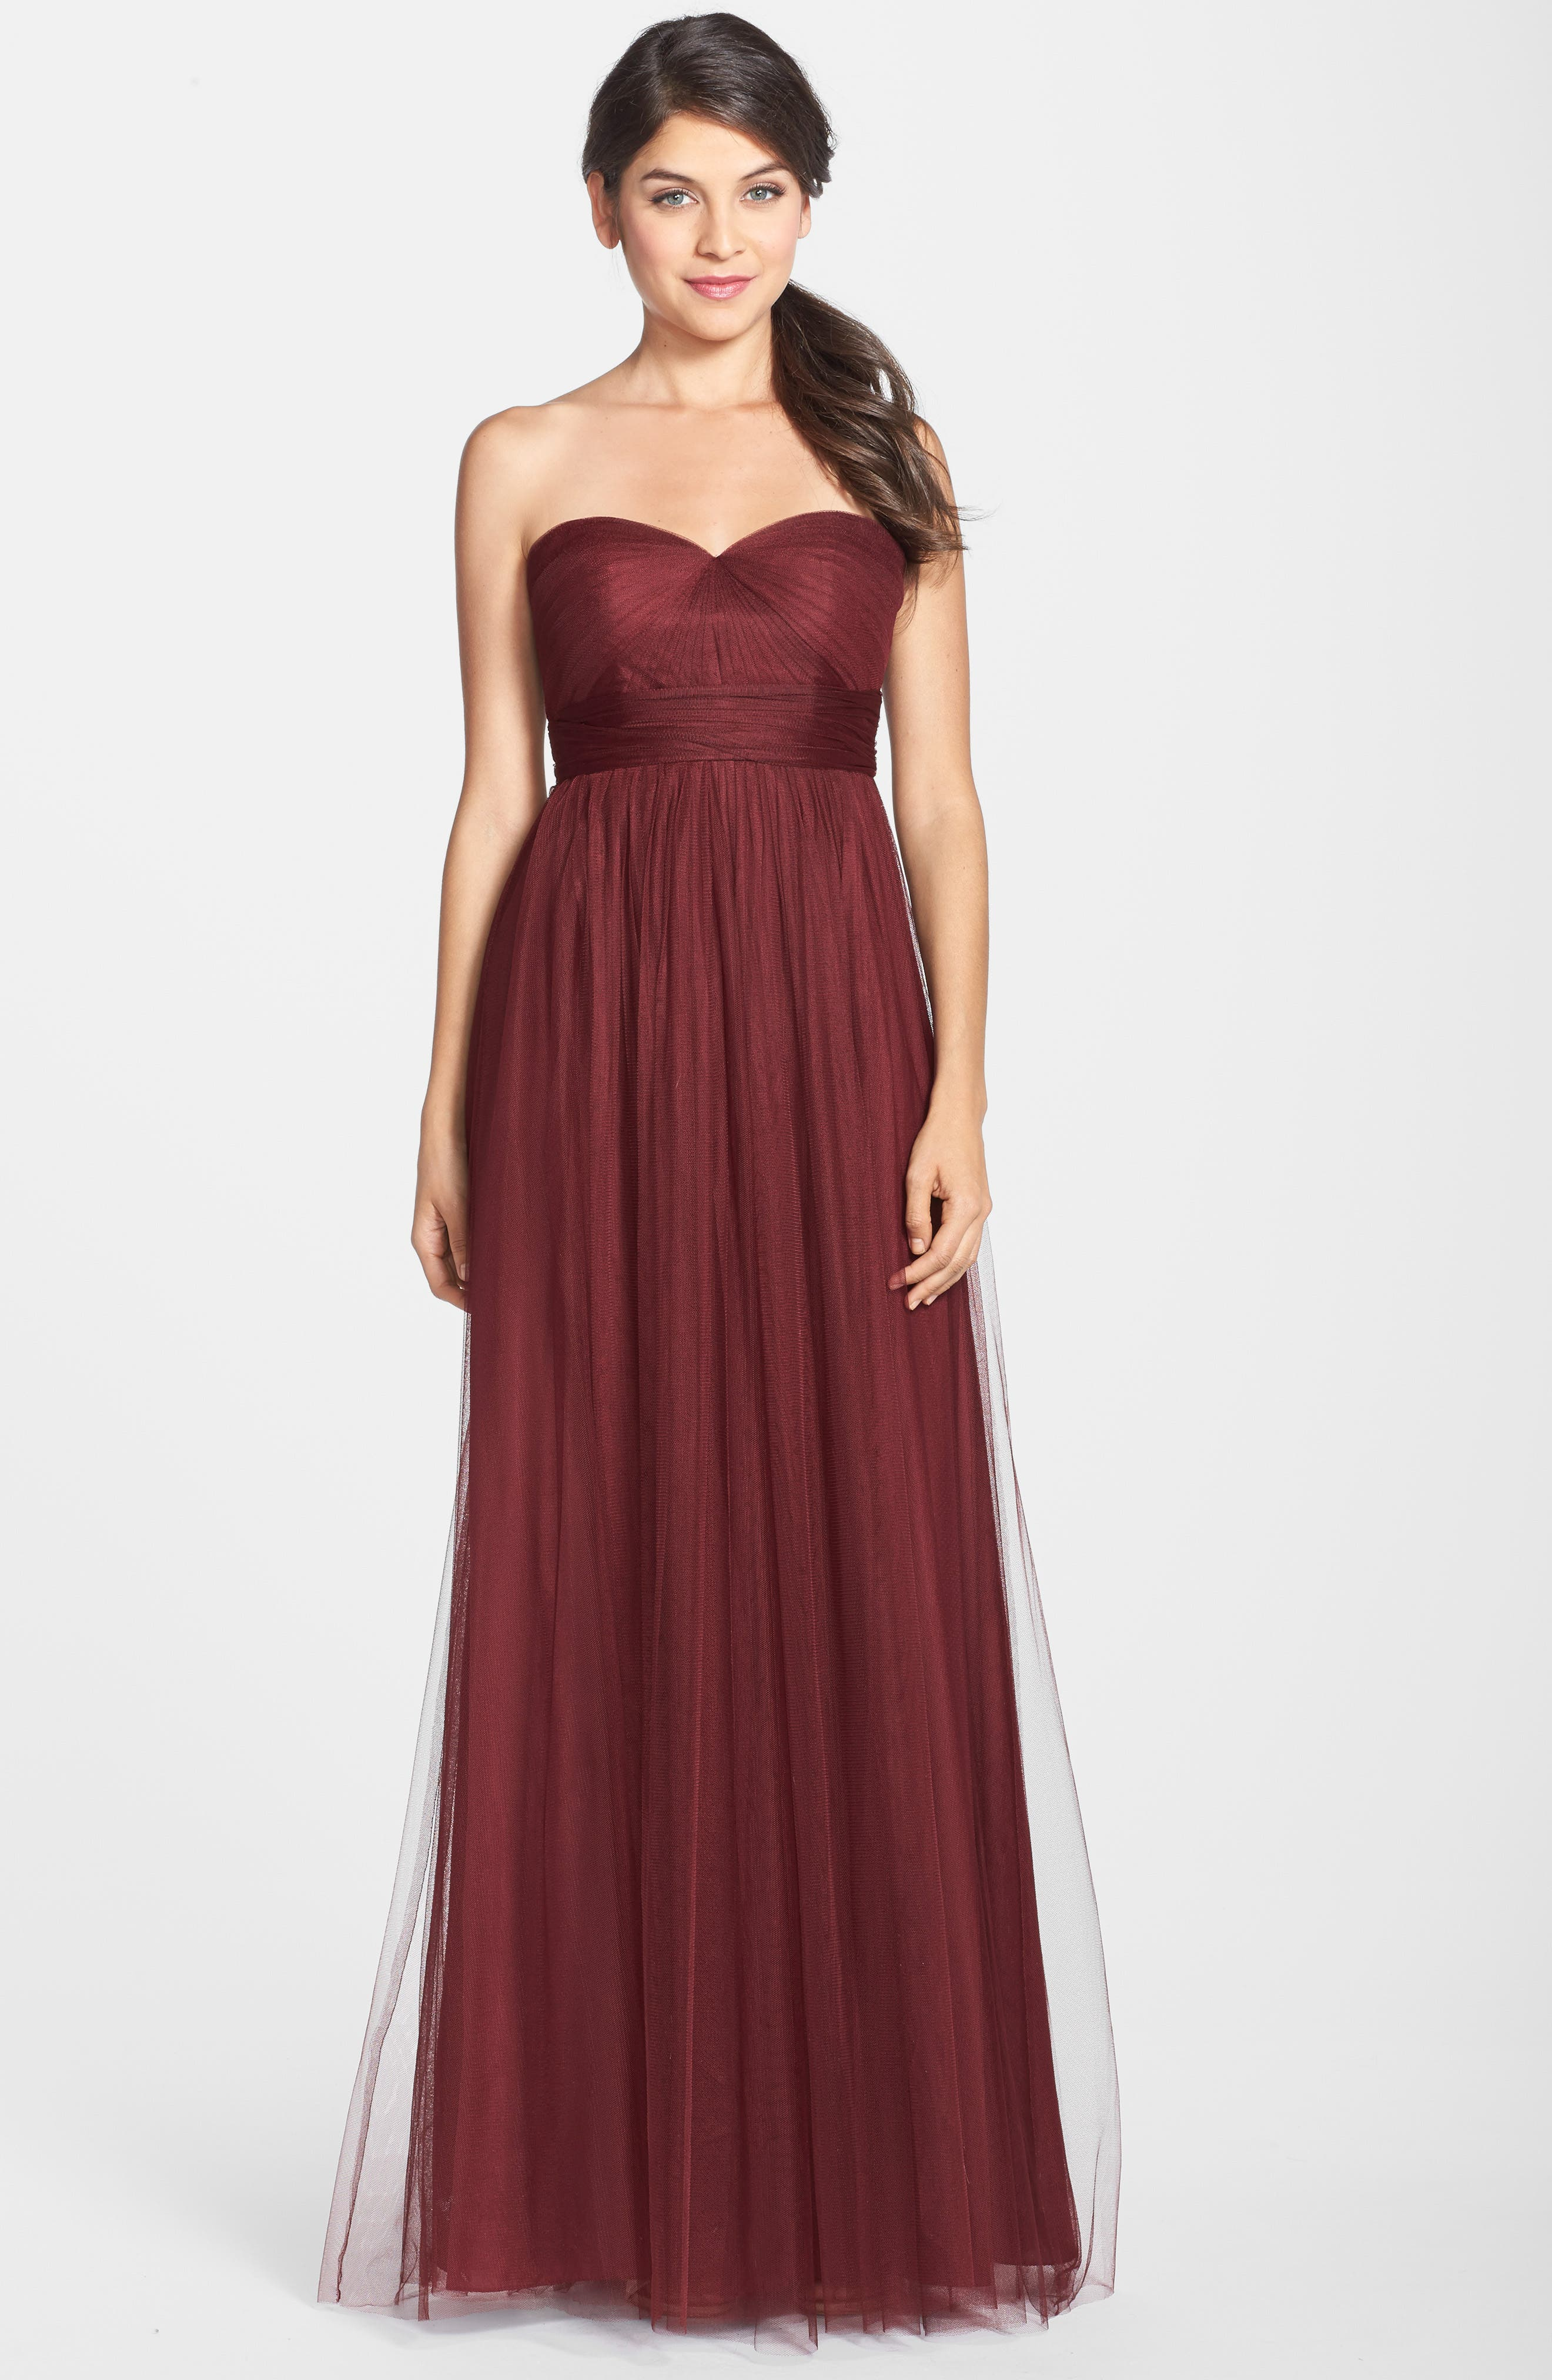 Annabelle Convertible Tulle Column Dress,                             Alternate thumbnail 125, color,